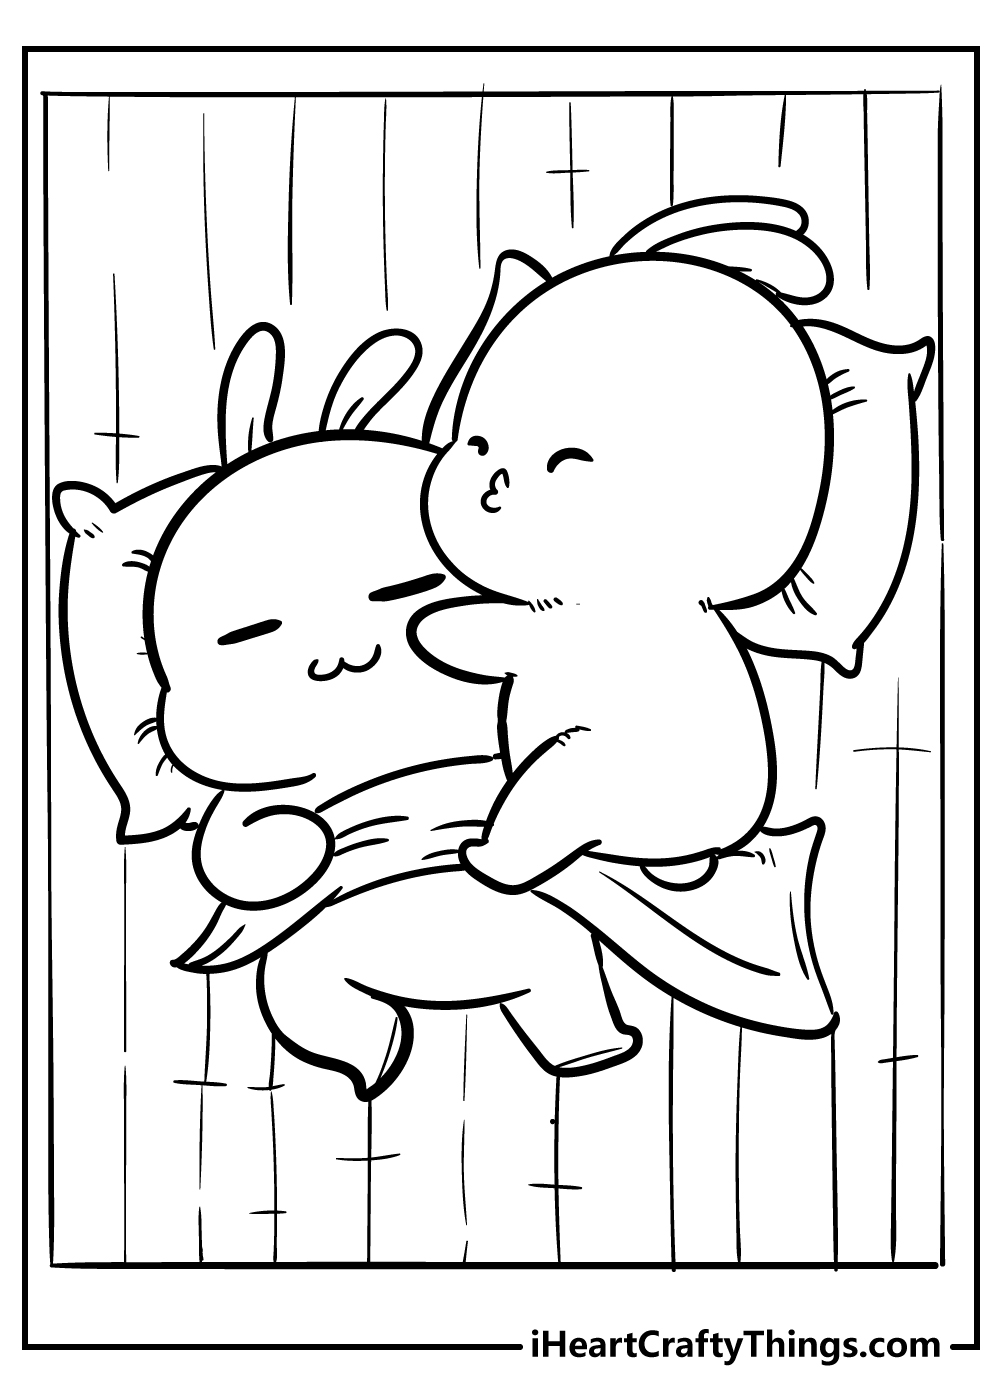 kawaii coloring pages for adults free download